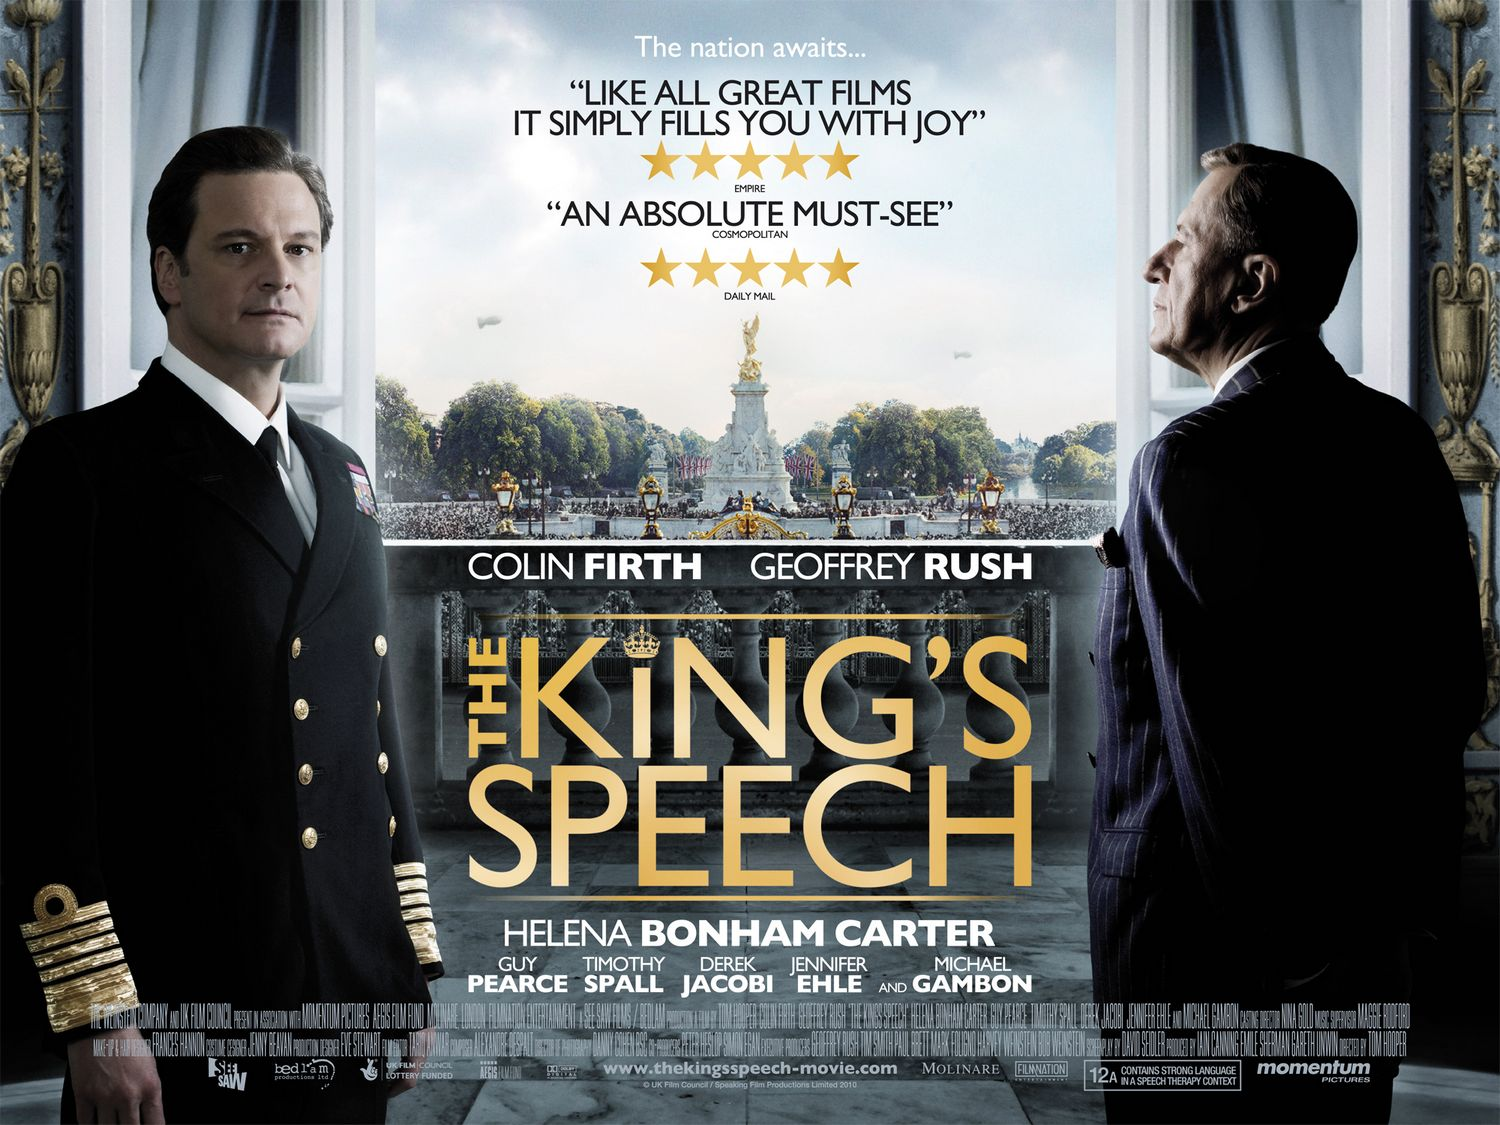 http://2.bp.blogspot.com/-bMB23QsBNr0/TWJKHbwkRmI/AAAAAAAACKM/xpImF5D2GC4/s1600/The-Kings-Speech-Wallpaper-01.jpg